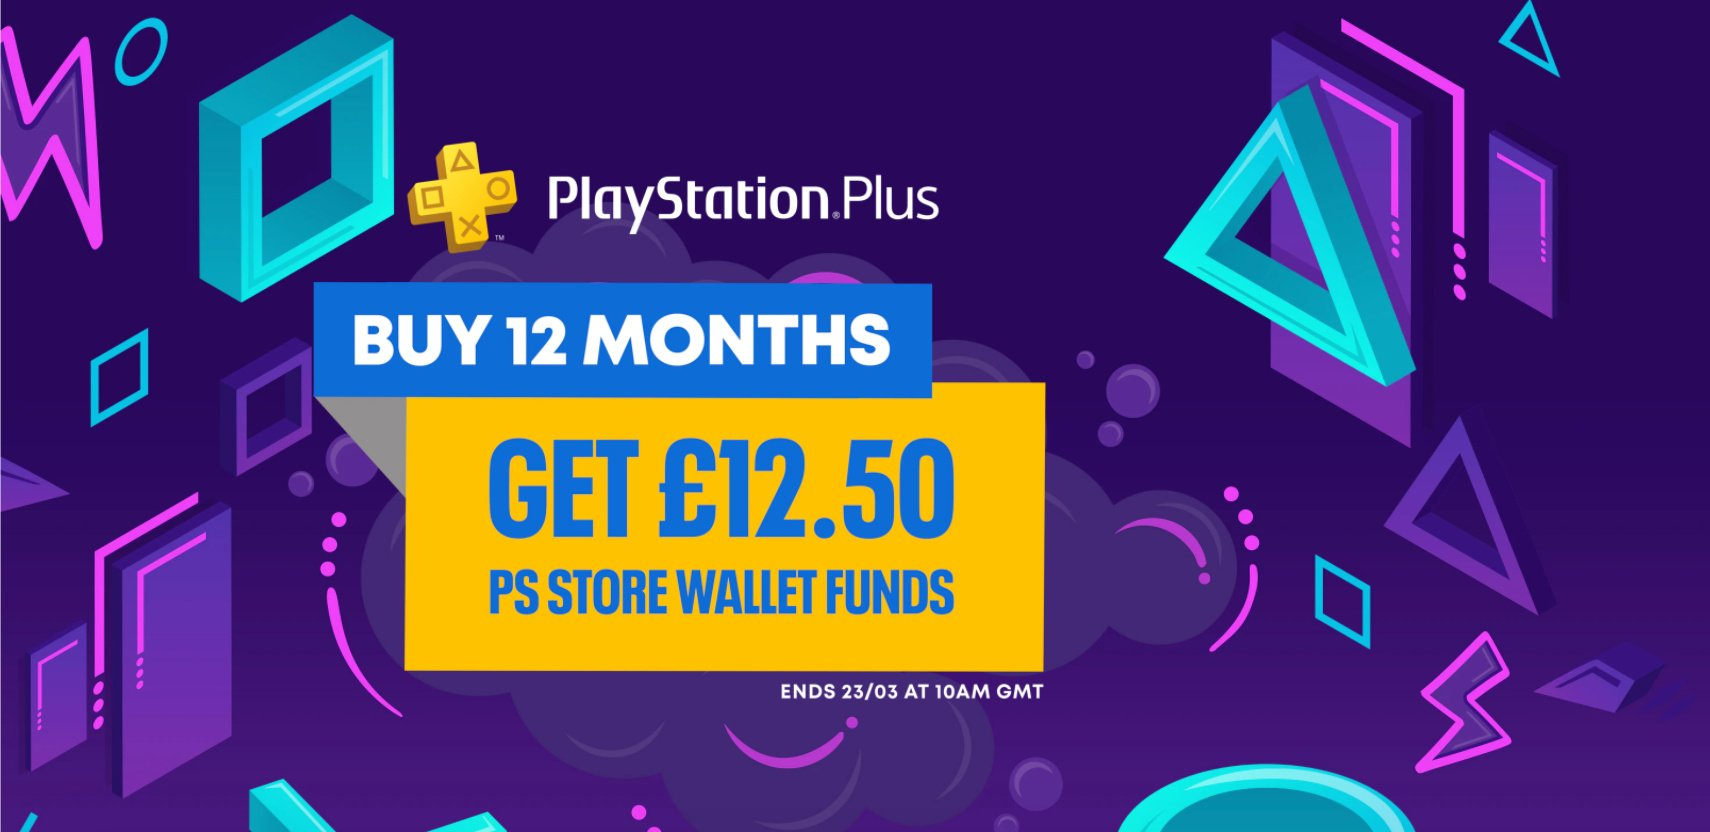 PS Store offers 25 Percent off annual PS Plus